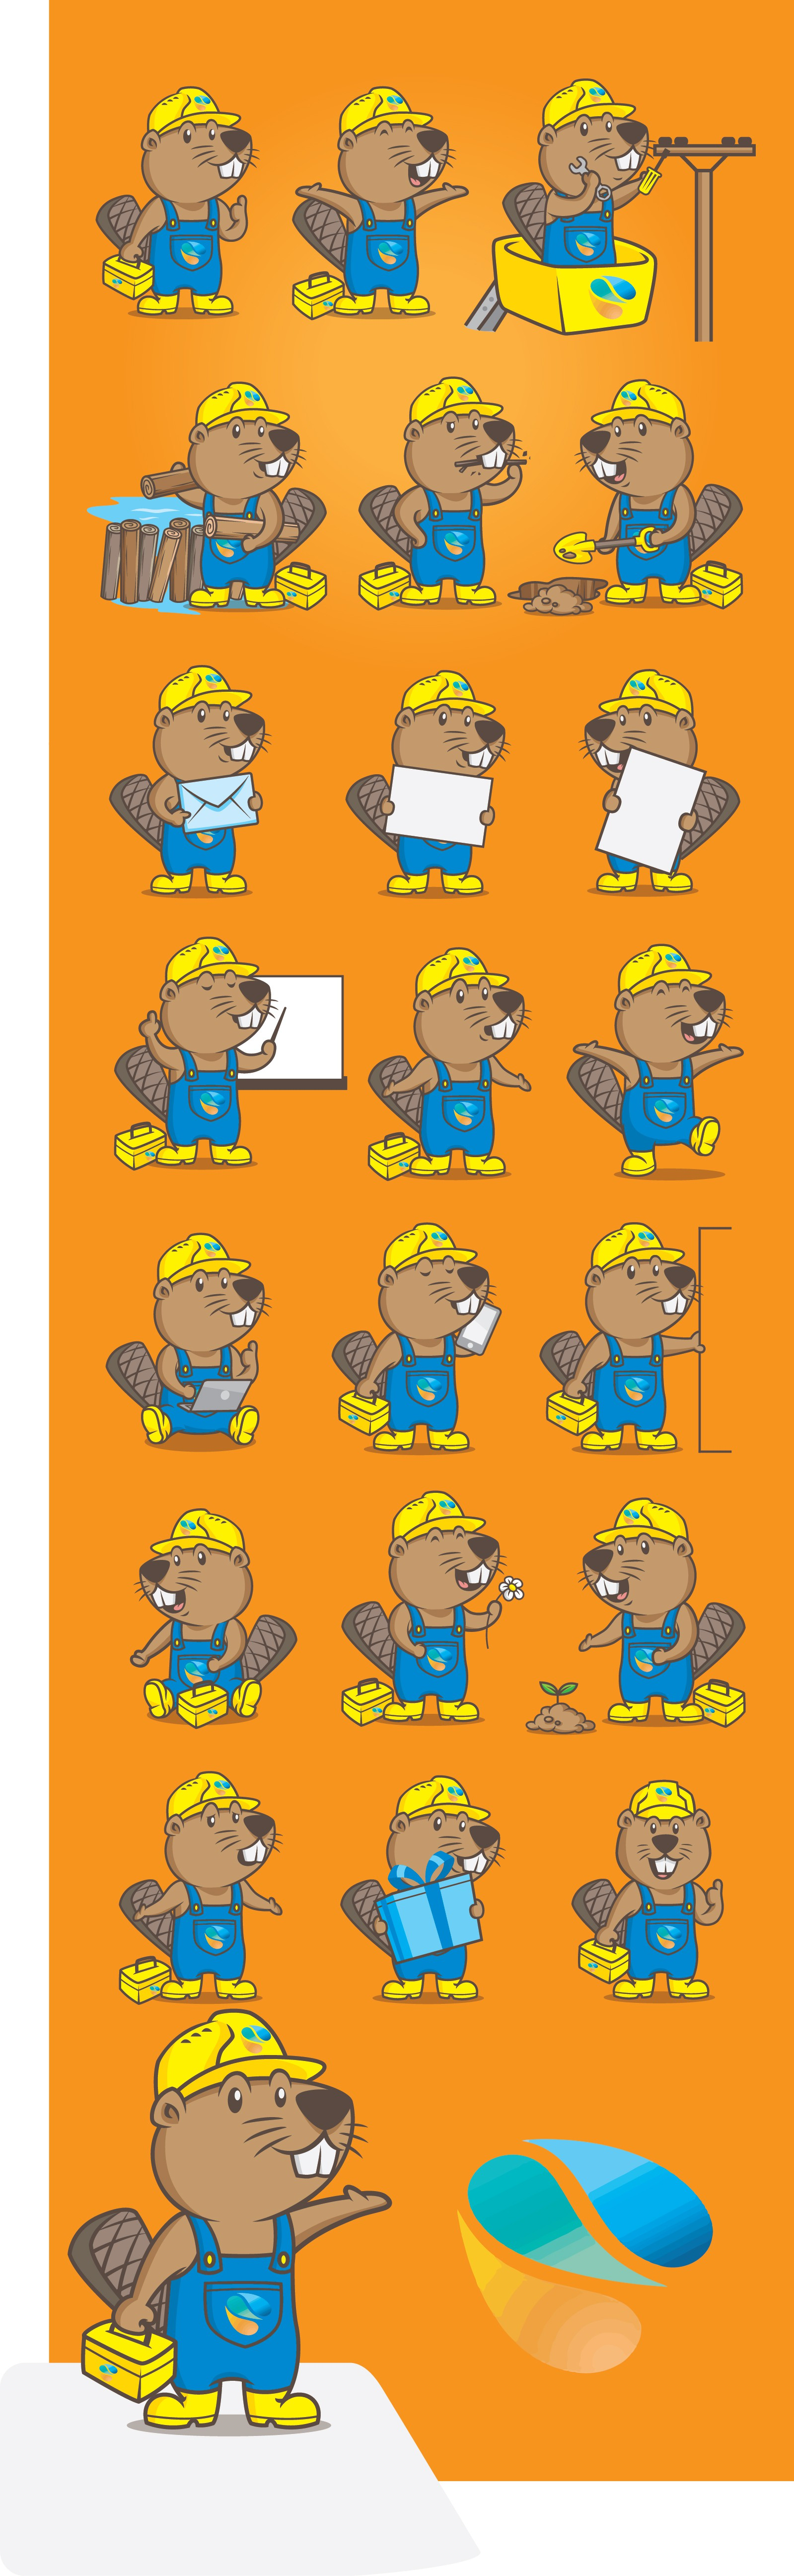 Make our mascot great & create a loveable beaver for municipal utilities